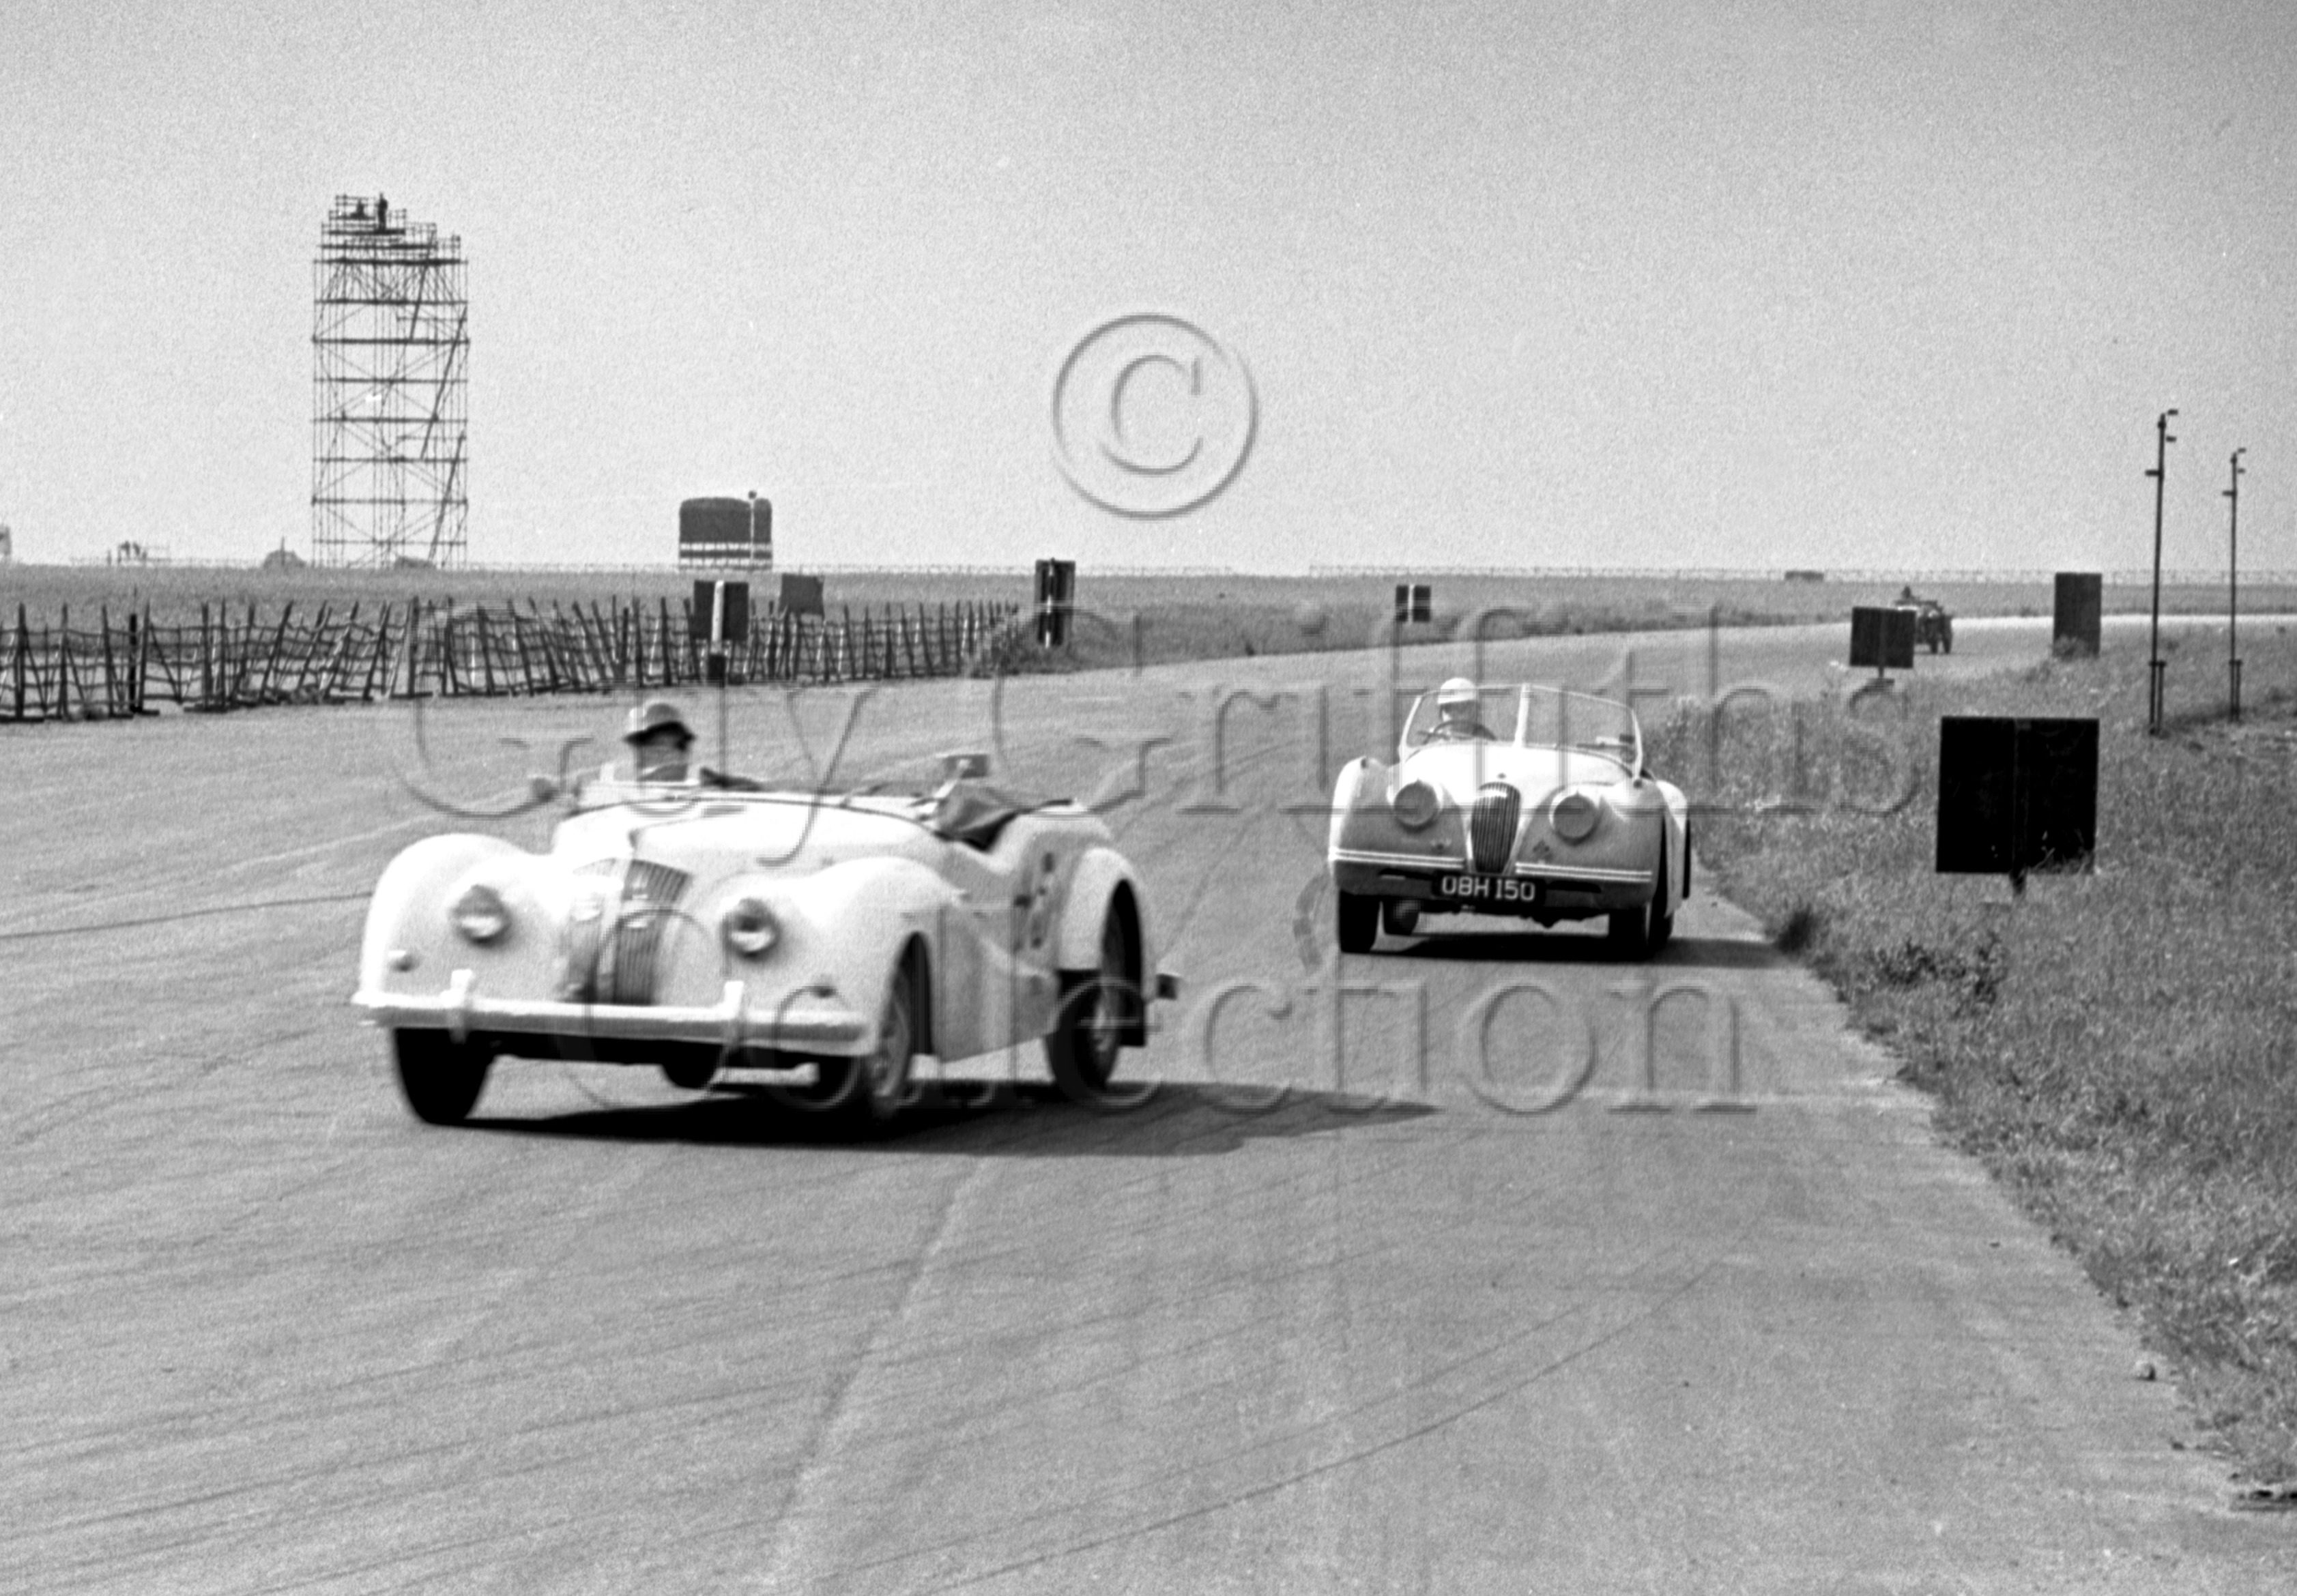 56-164–G-Lee–Jaguar–Silverstone–07-06-1952.jpg - The Guy Griffiths Collection